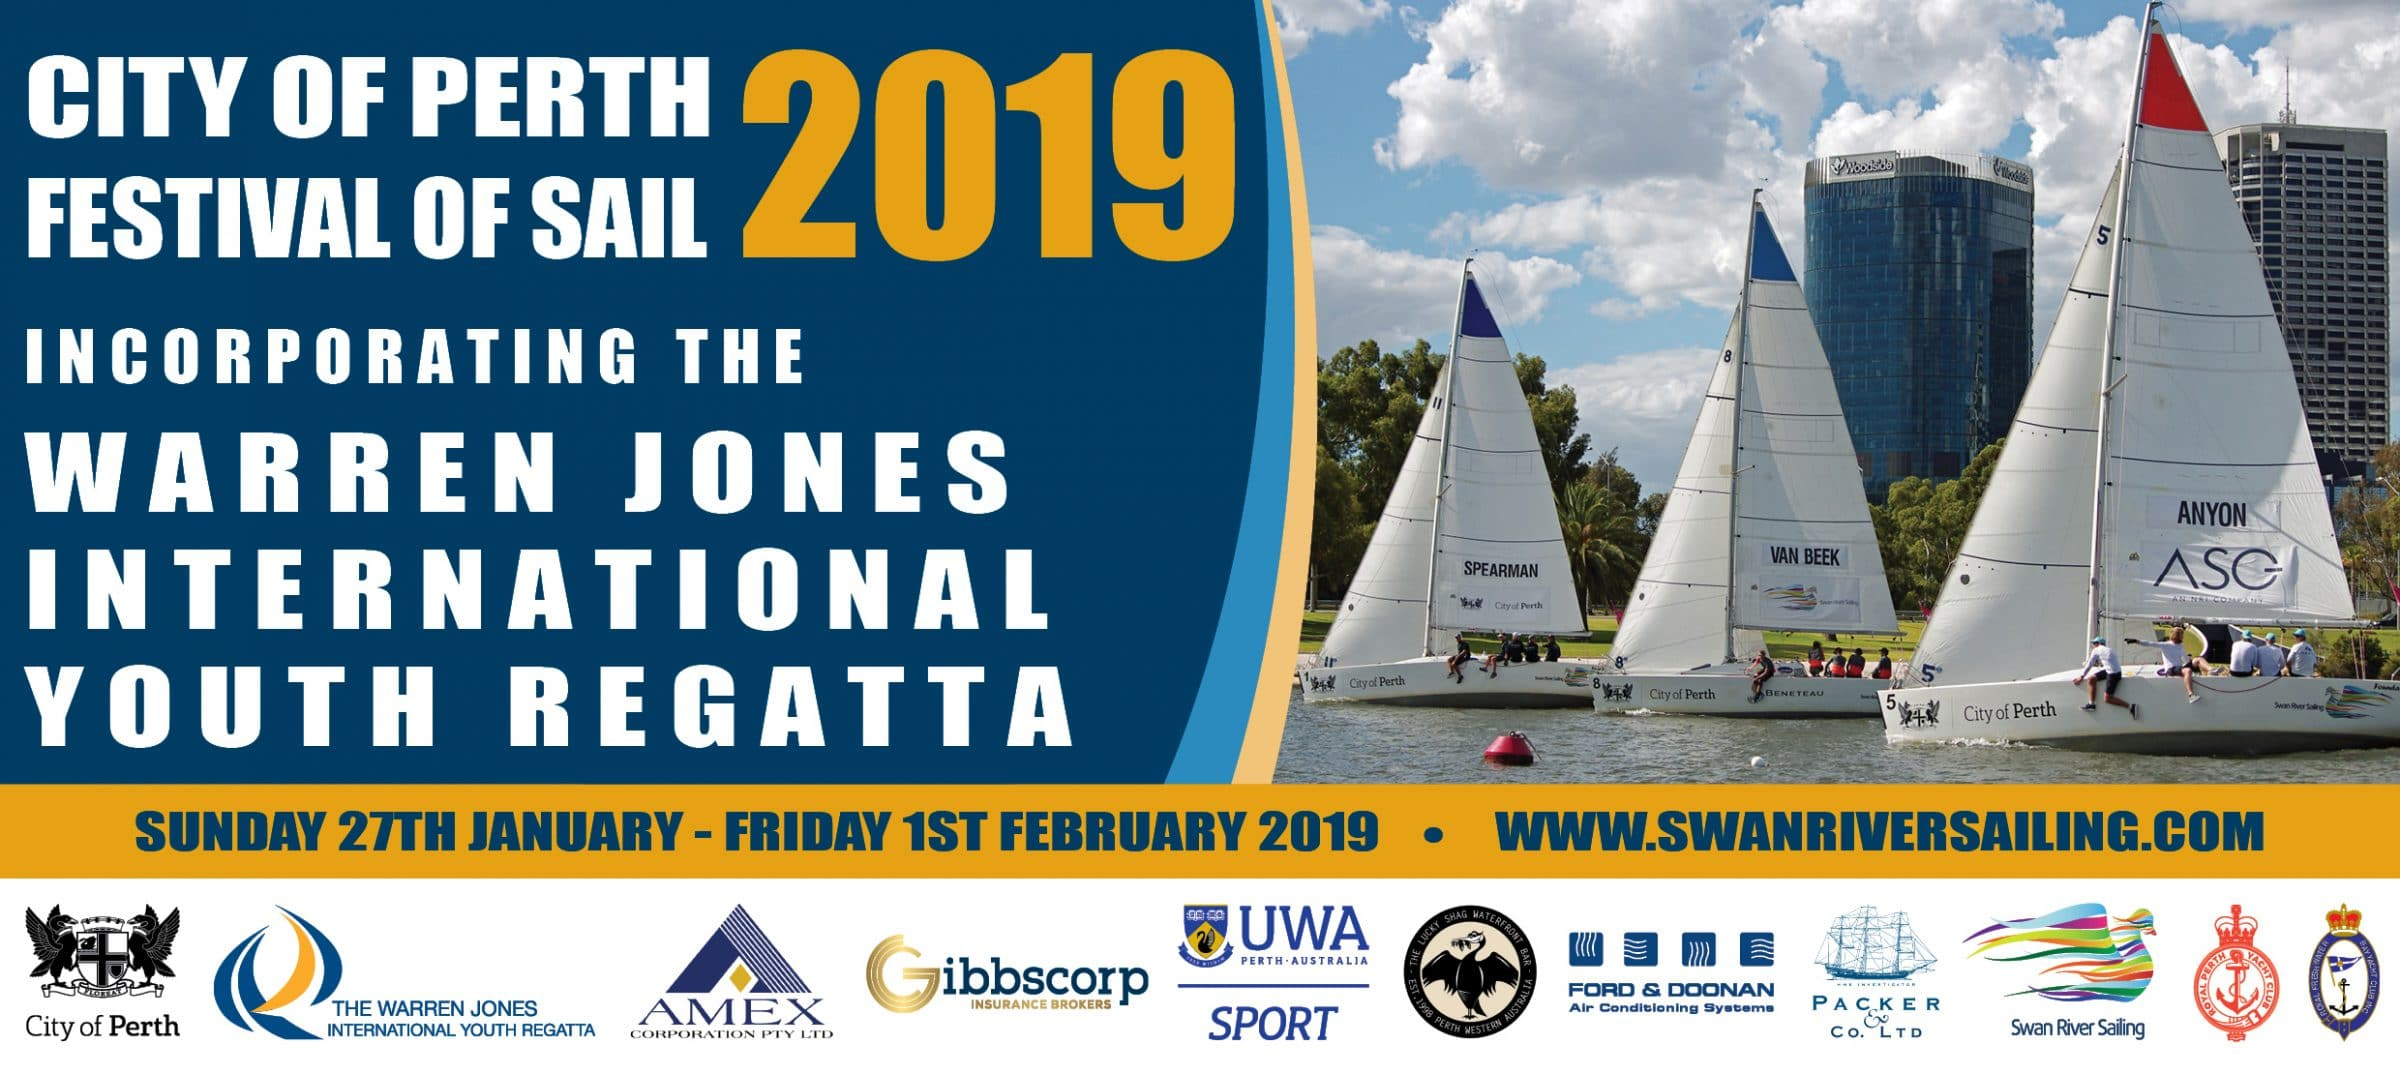 2019 City of Perth festival of sail incorporating the Warren Jones International Youth Regatta